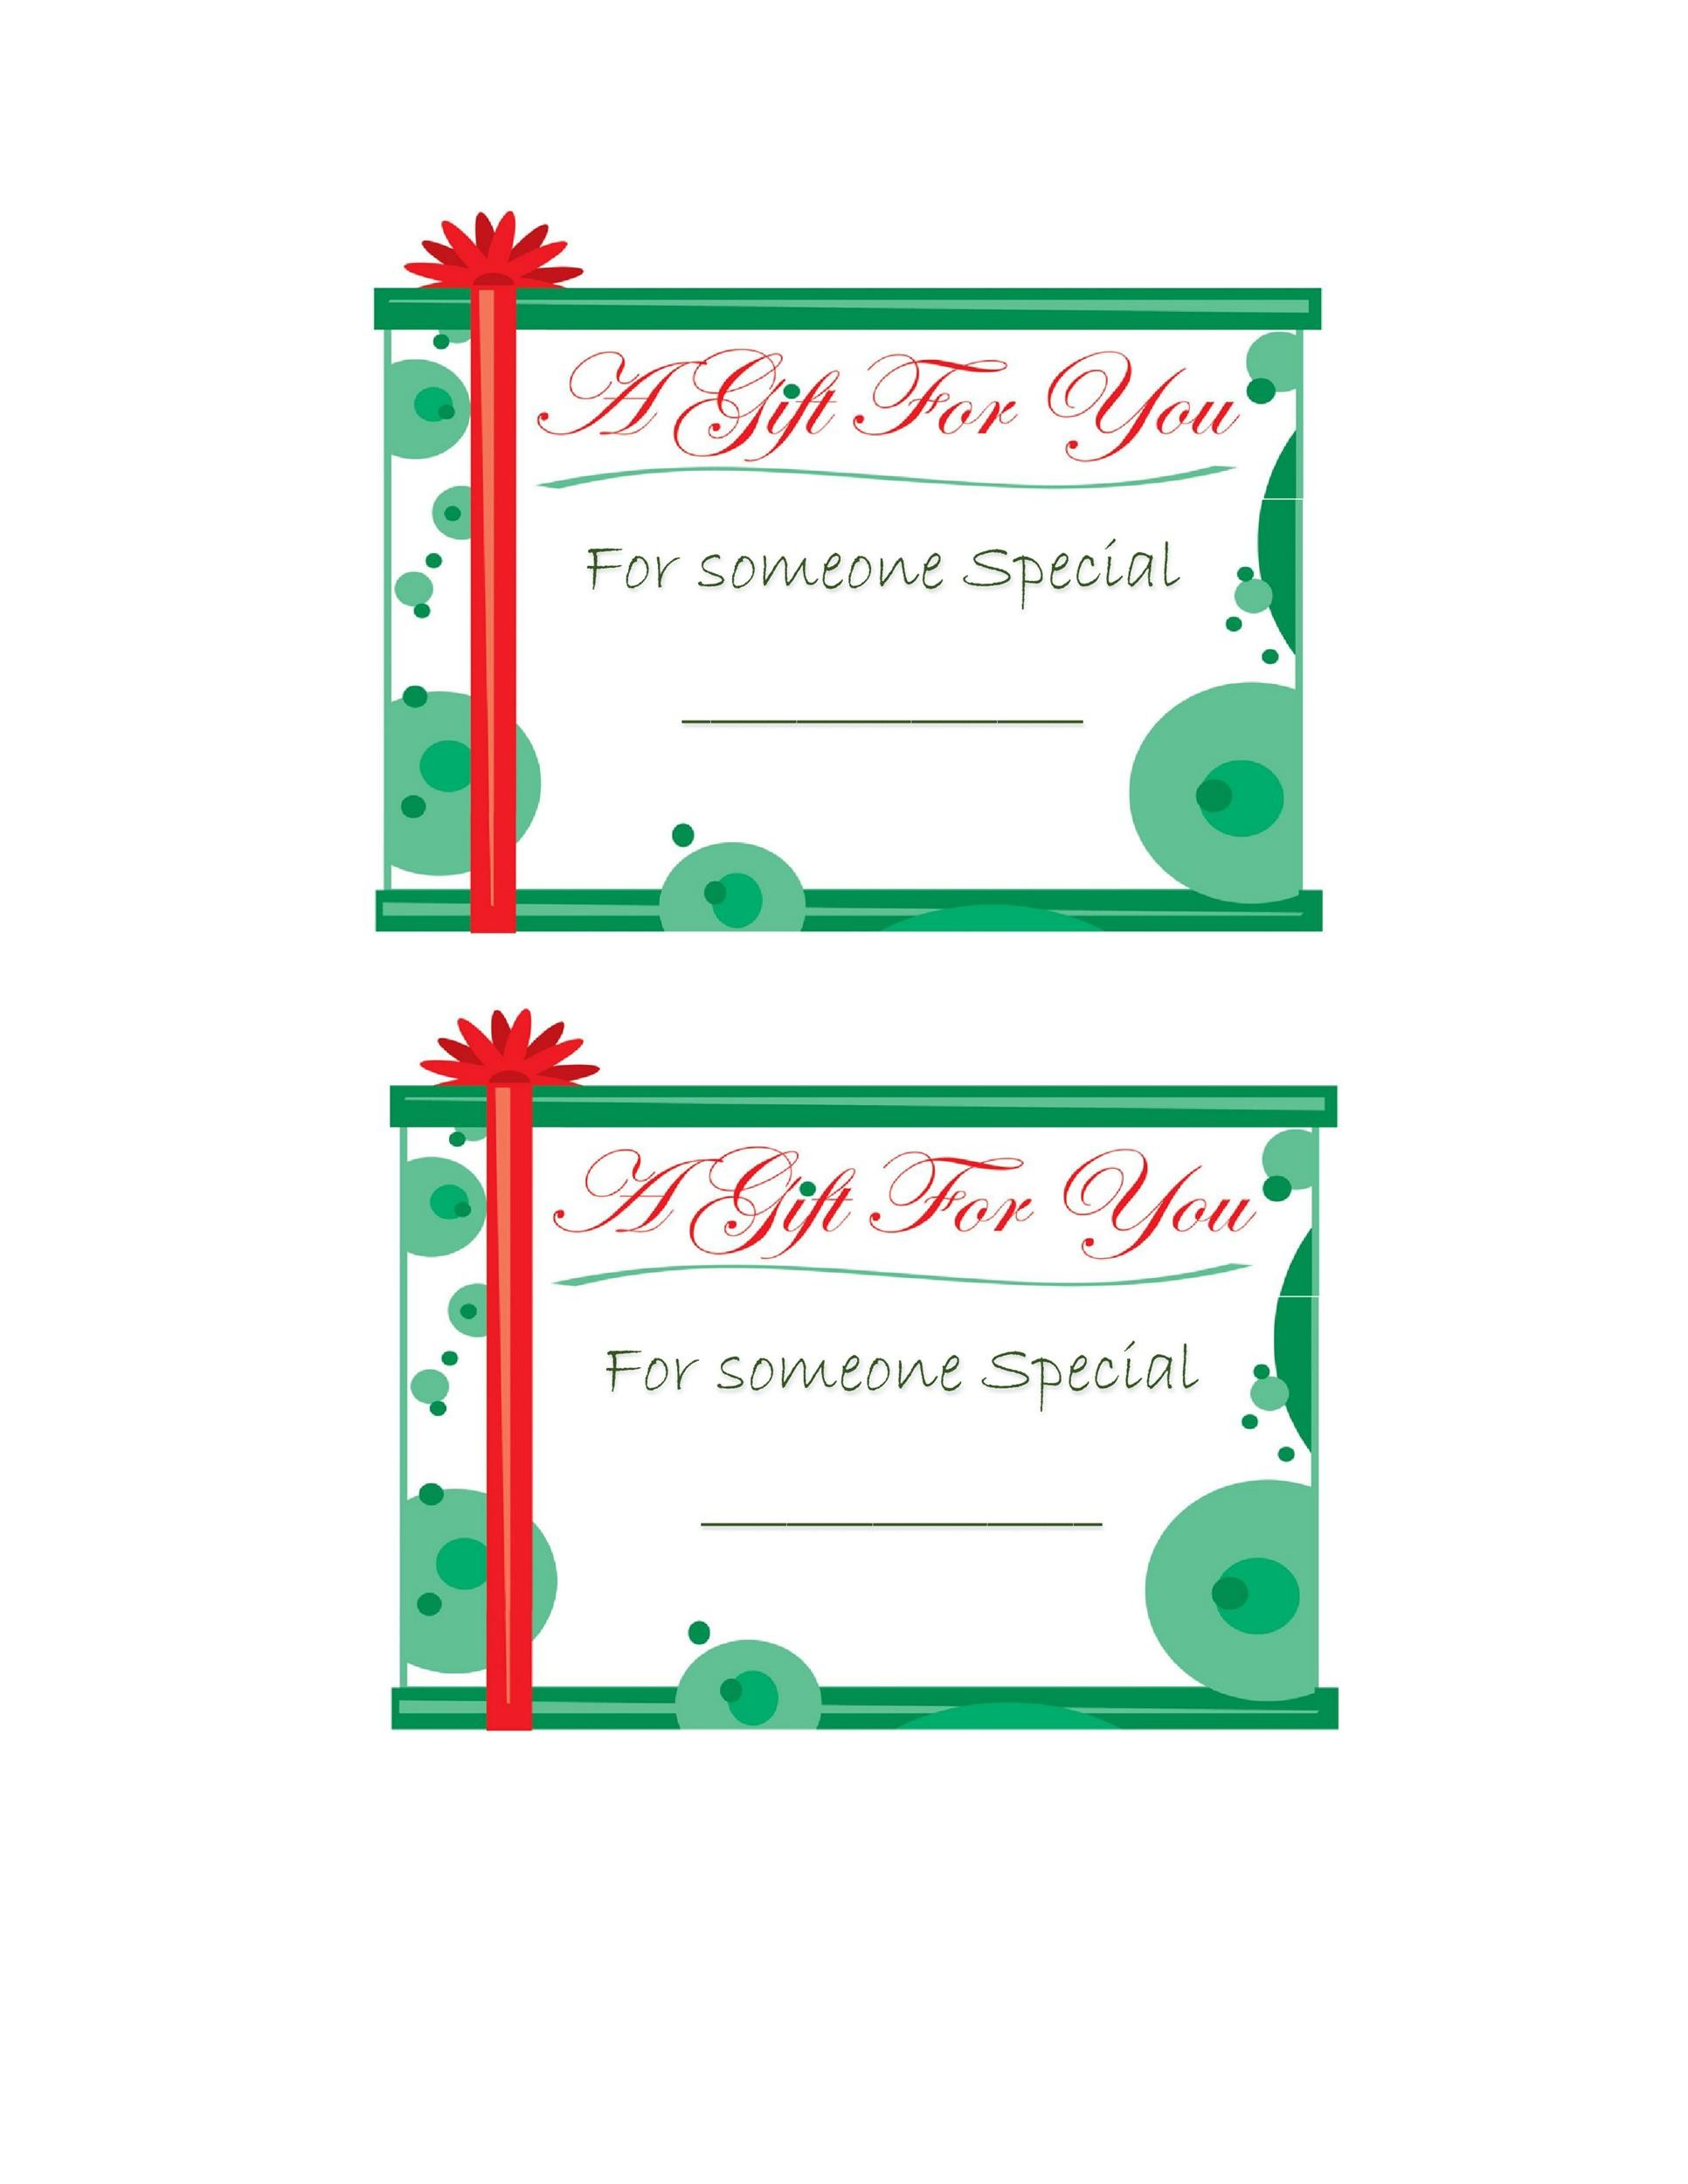 Wine Tag Template Make Your Own Custom Gift Tags With These Free